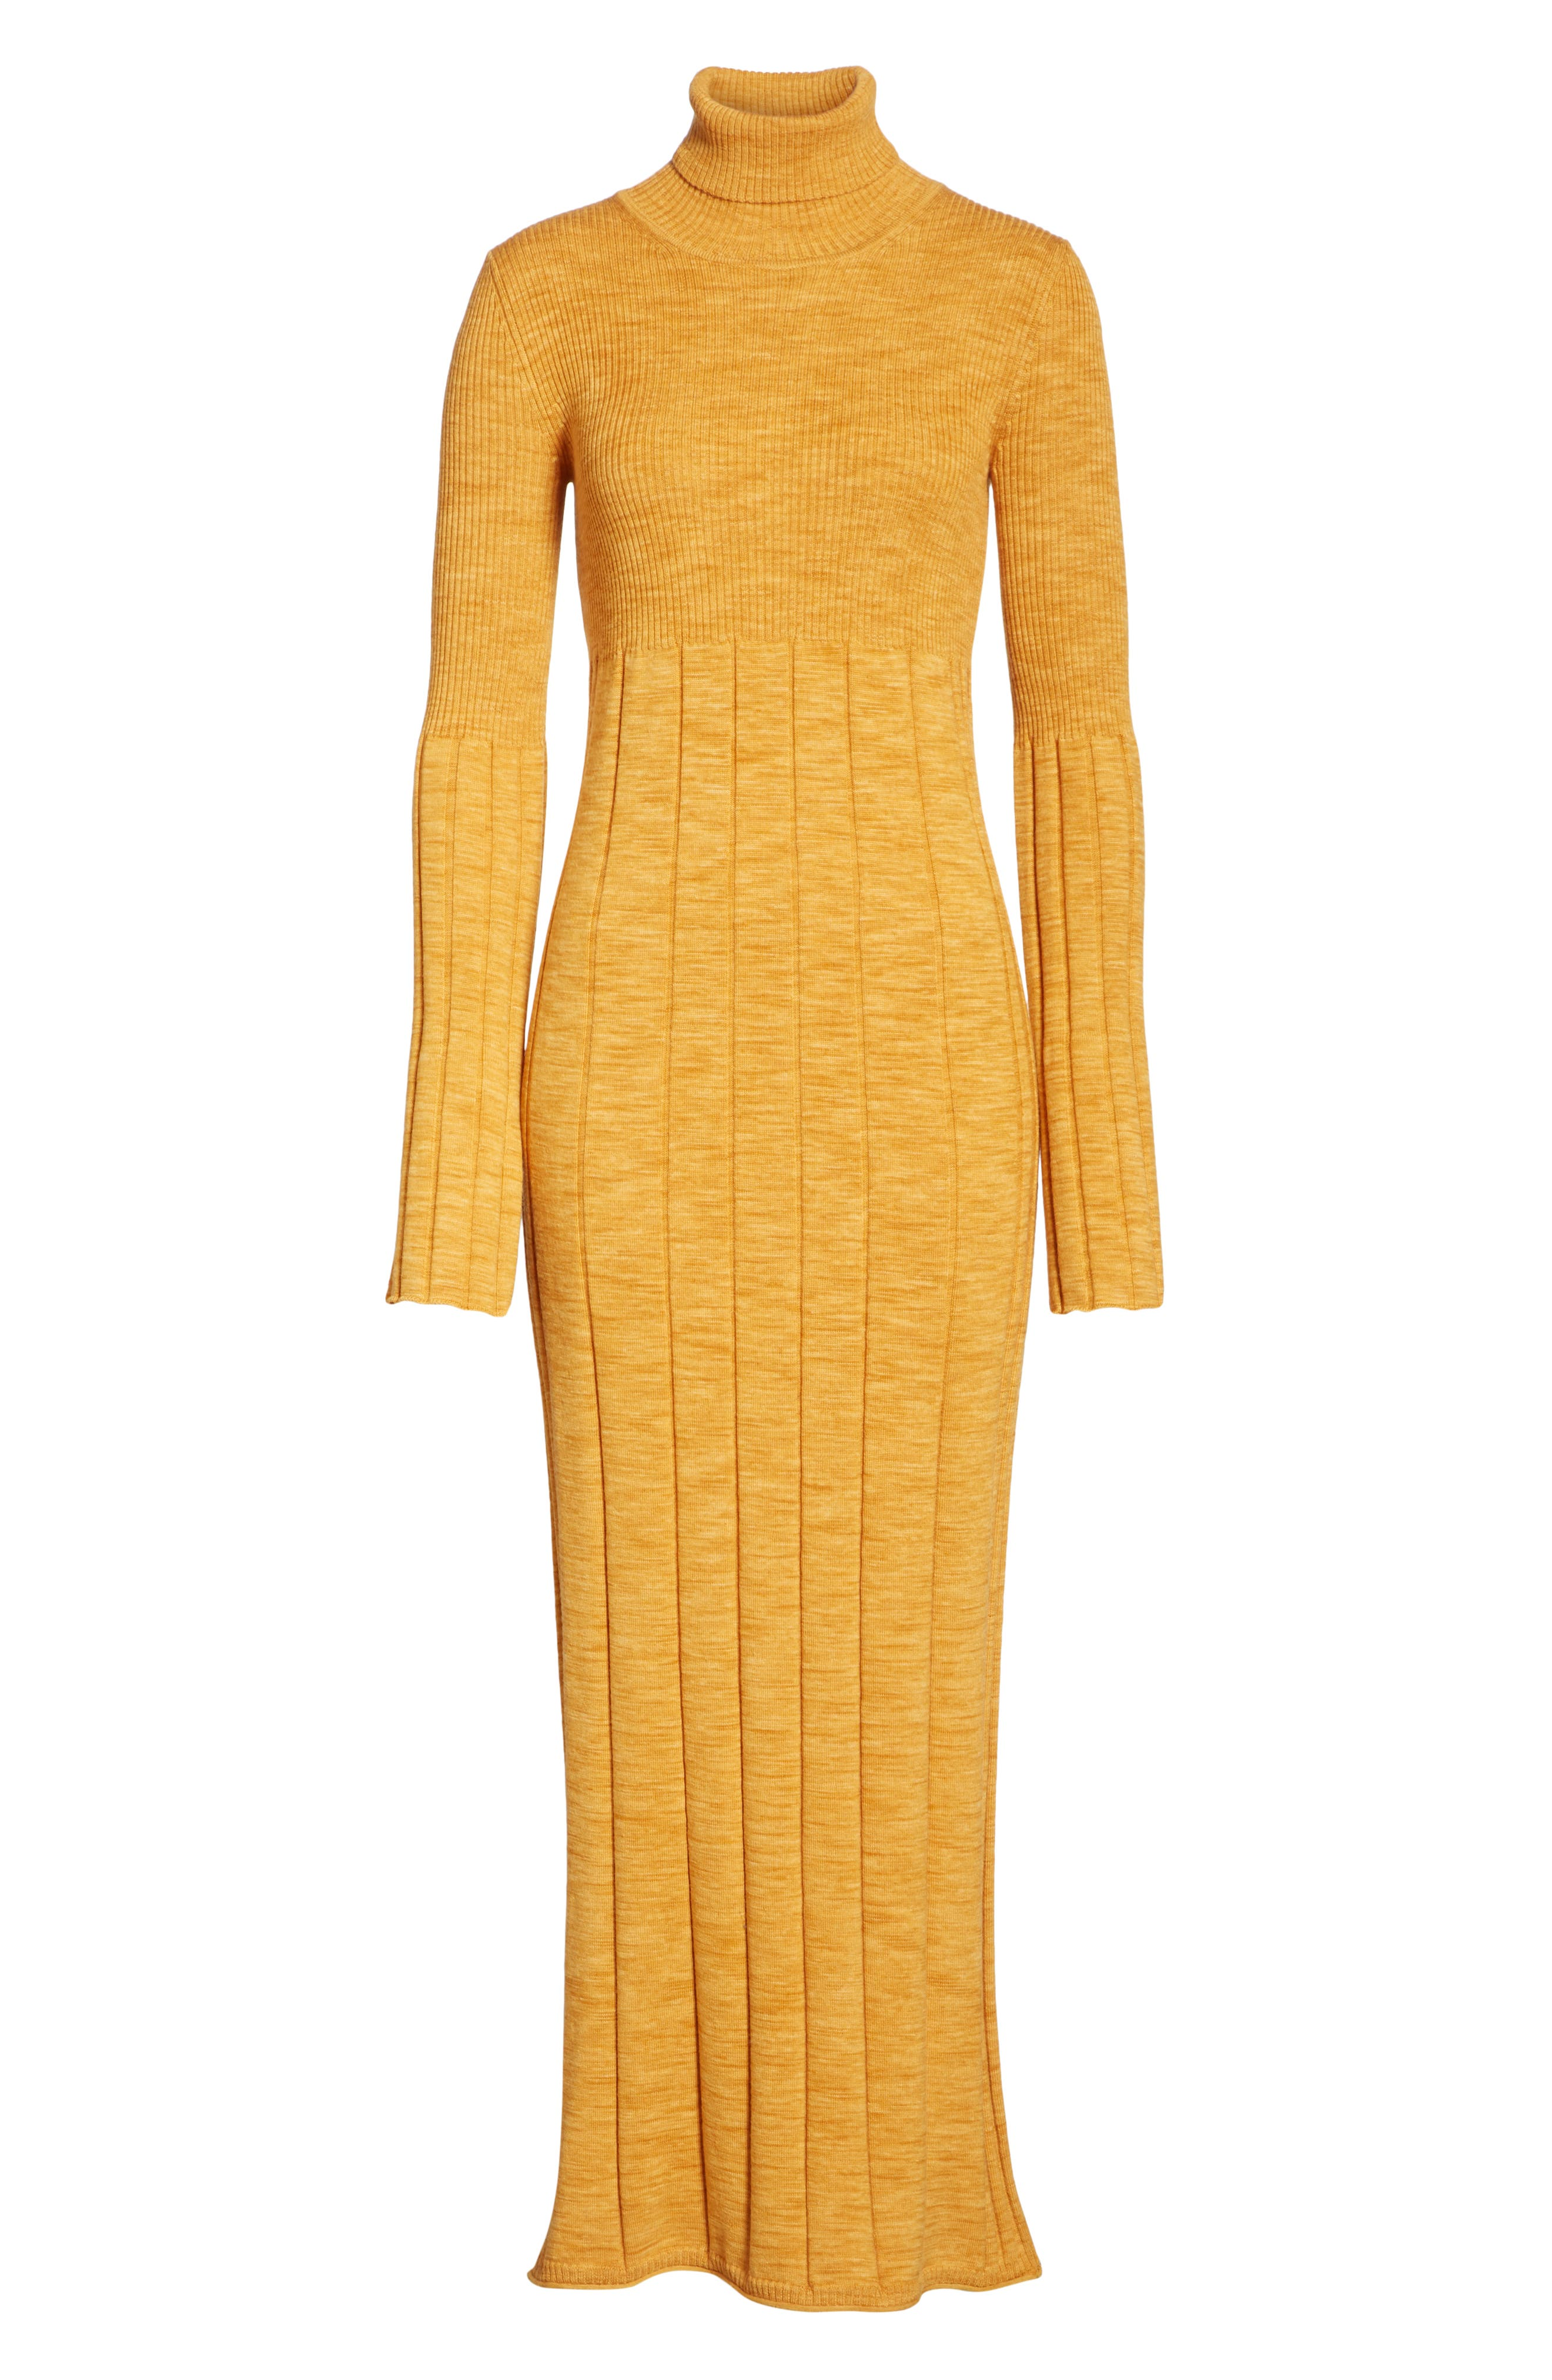 Clementine Ribbed Space Dye Wool Dress,                             Alternate thumbnail 6, color,                             700